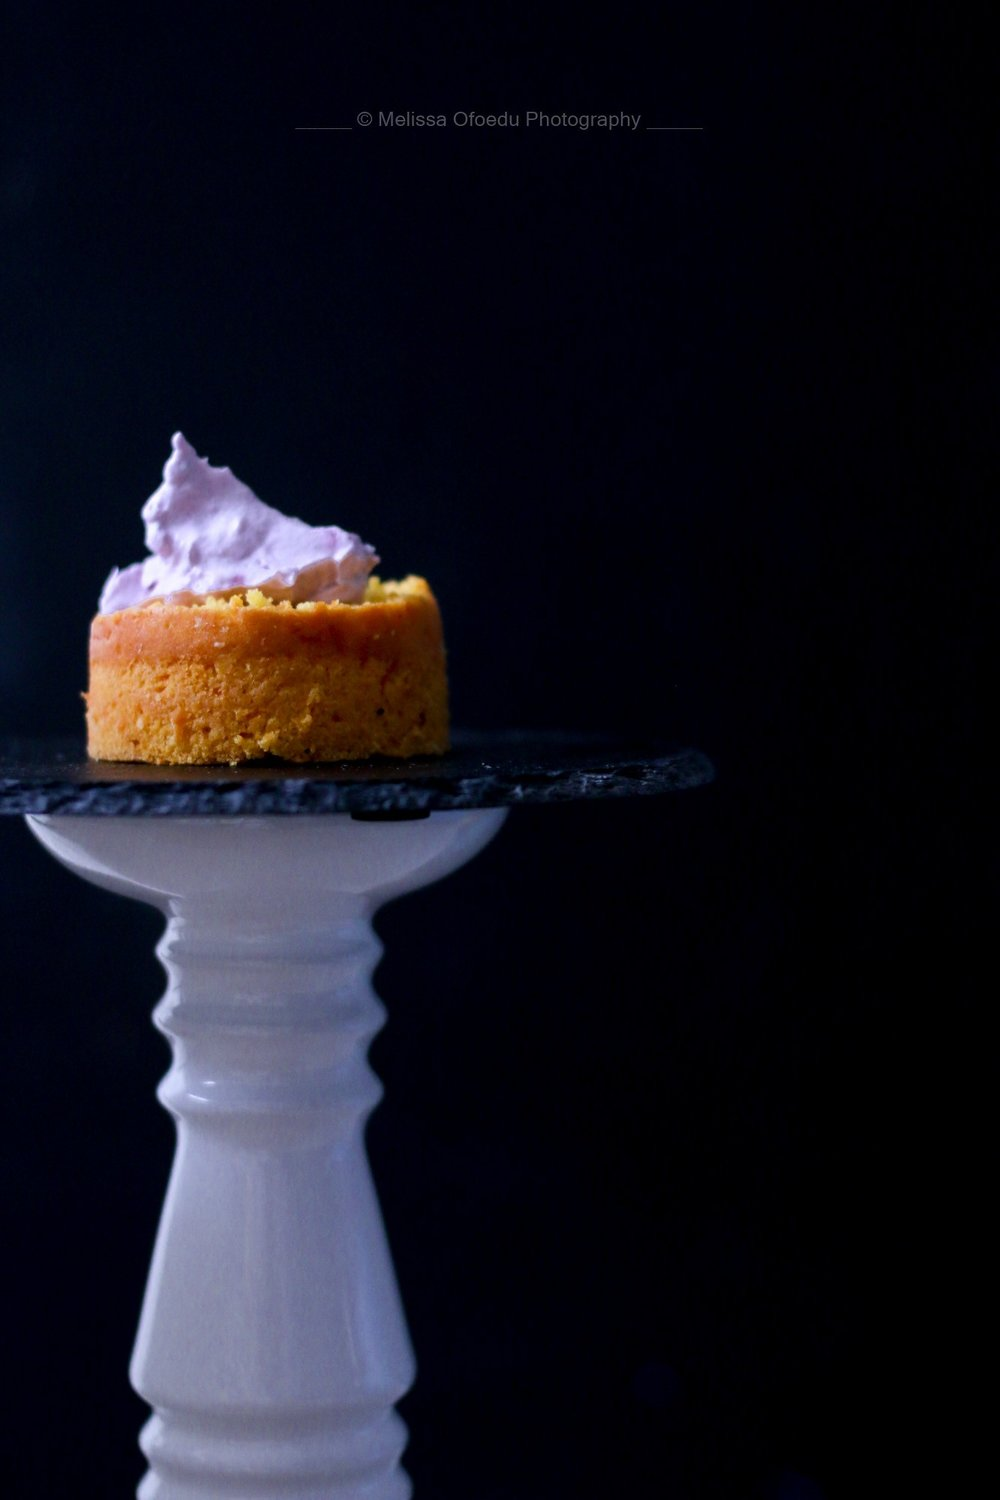 pumpkin-spice-cake-with-blackberrycream-melissa-ofoedu-photography-4-von-1